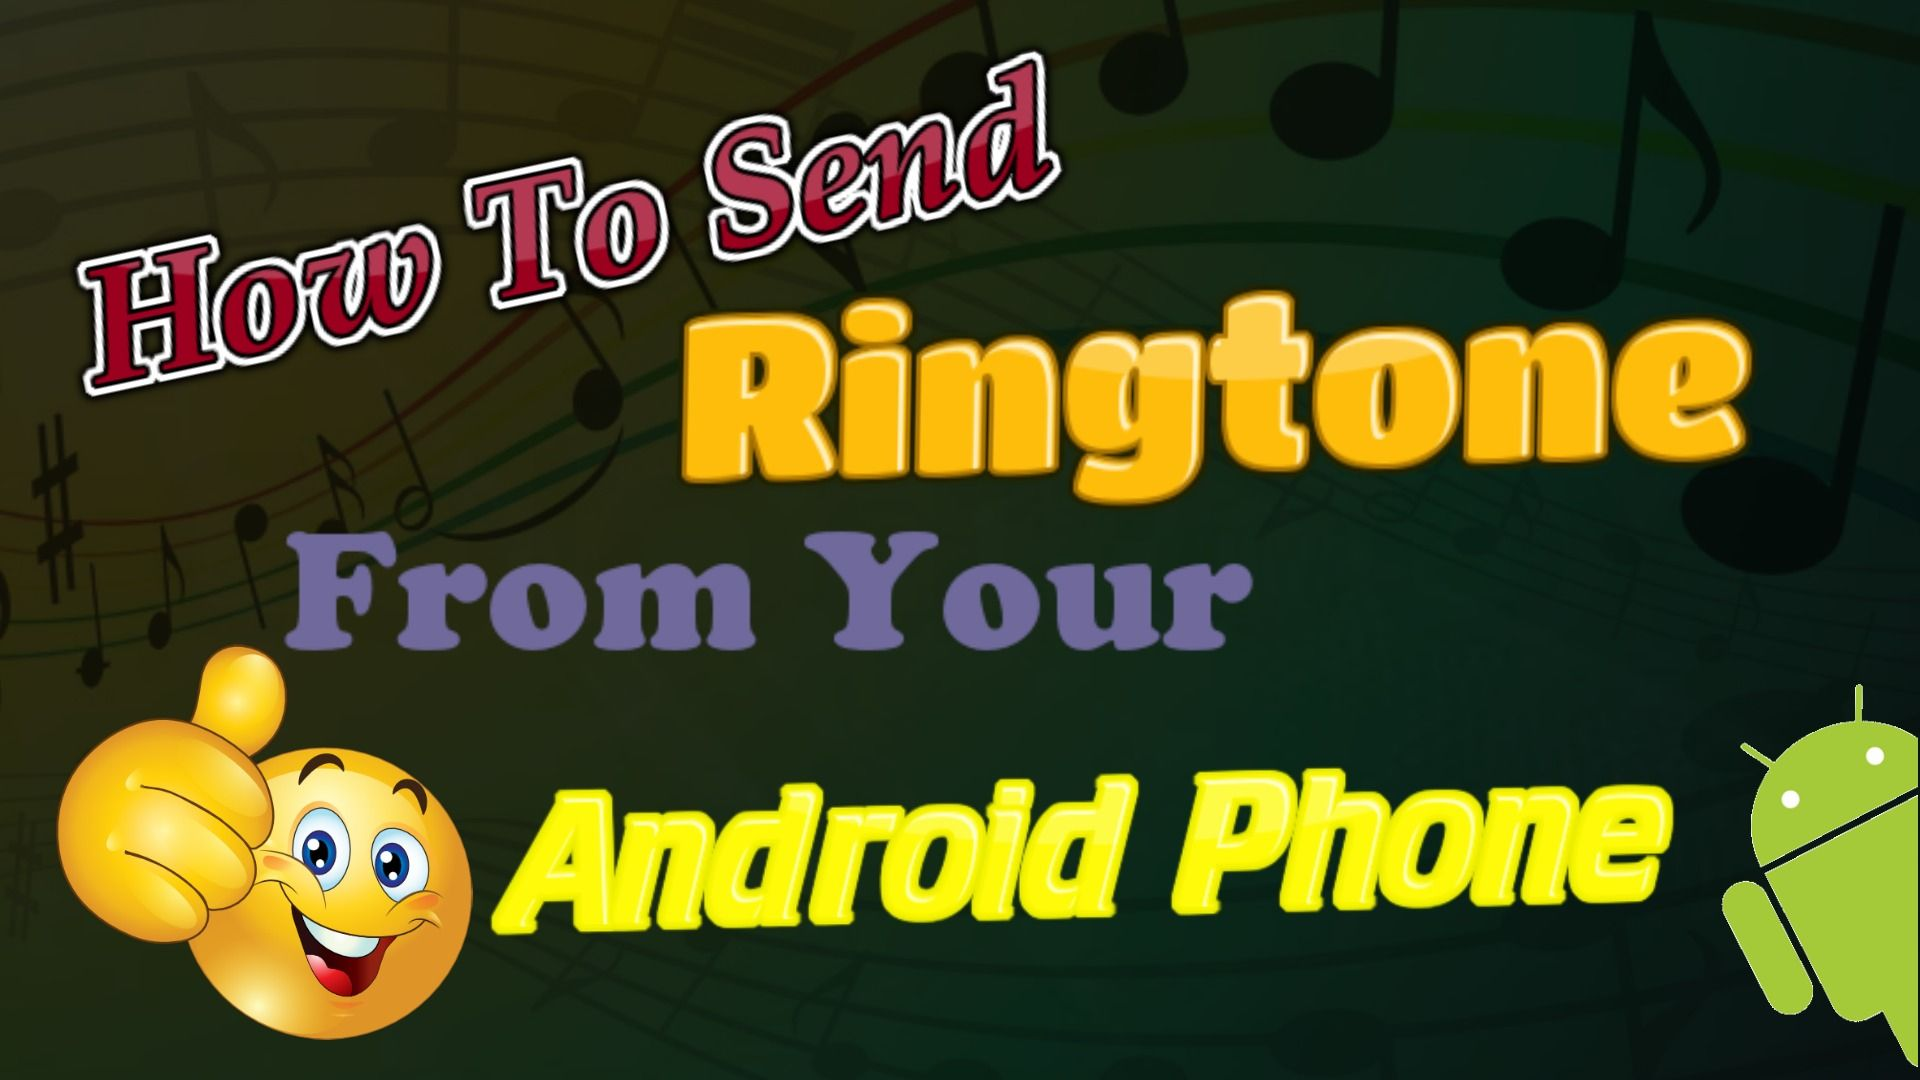 A ringtone is the sound coming from a mobile phone if you